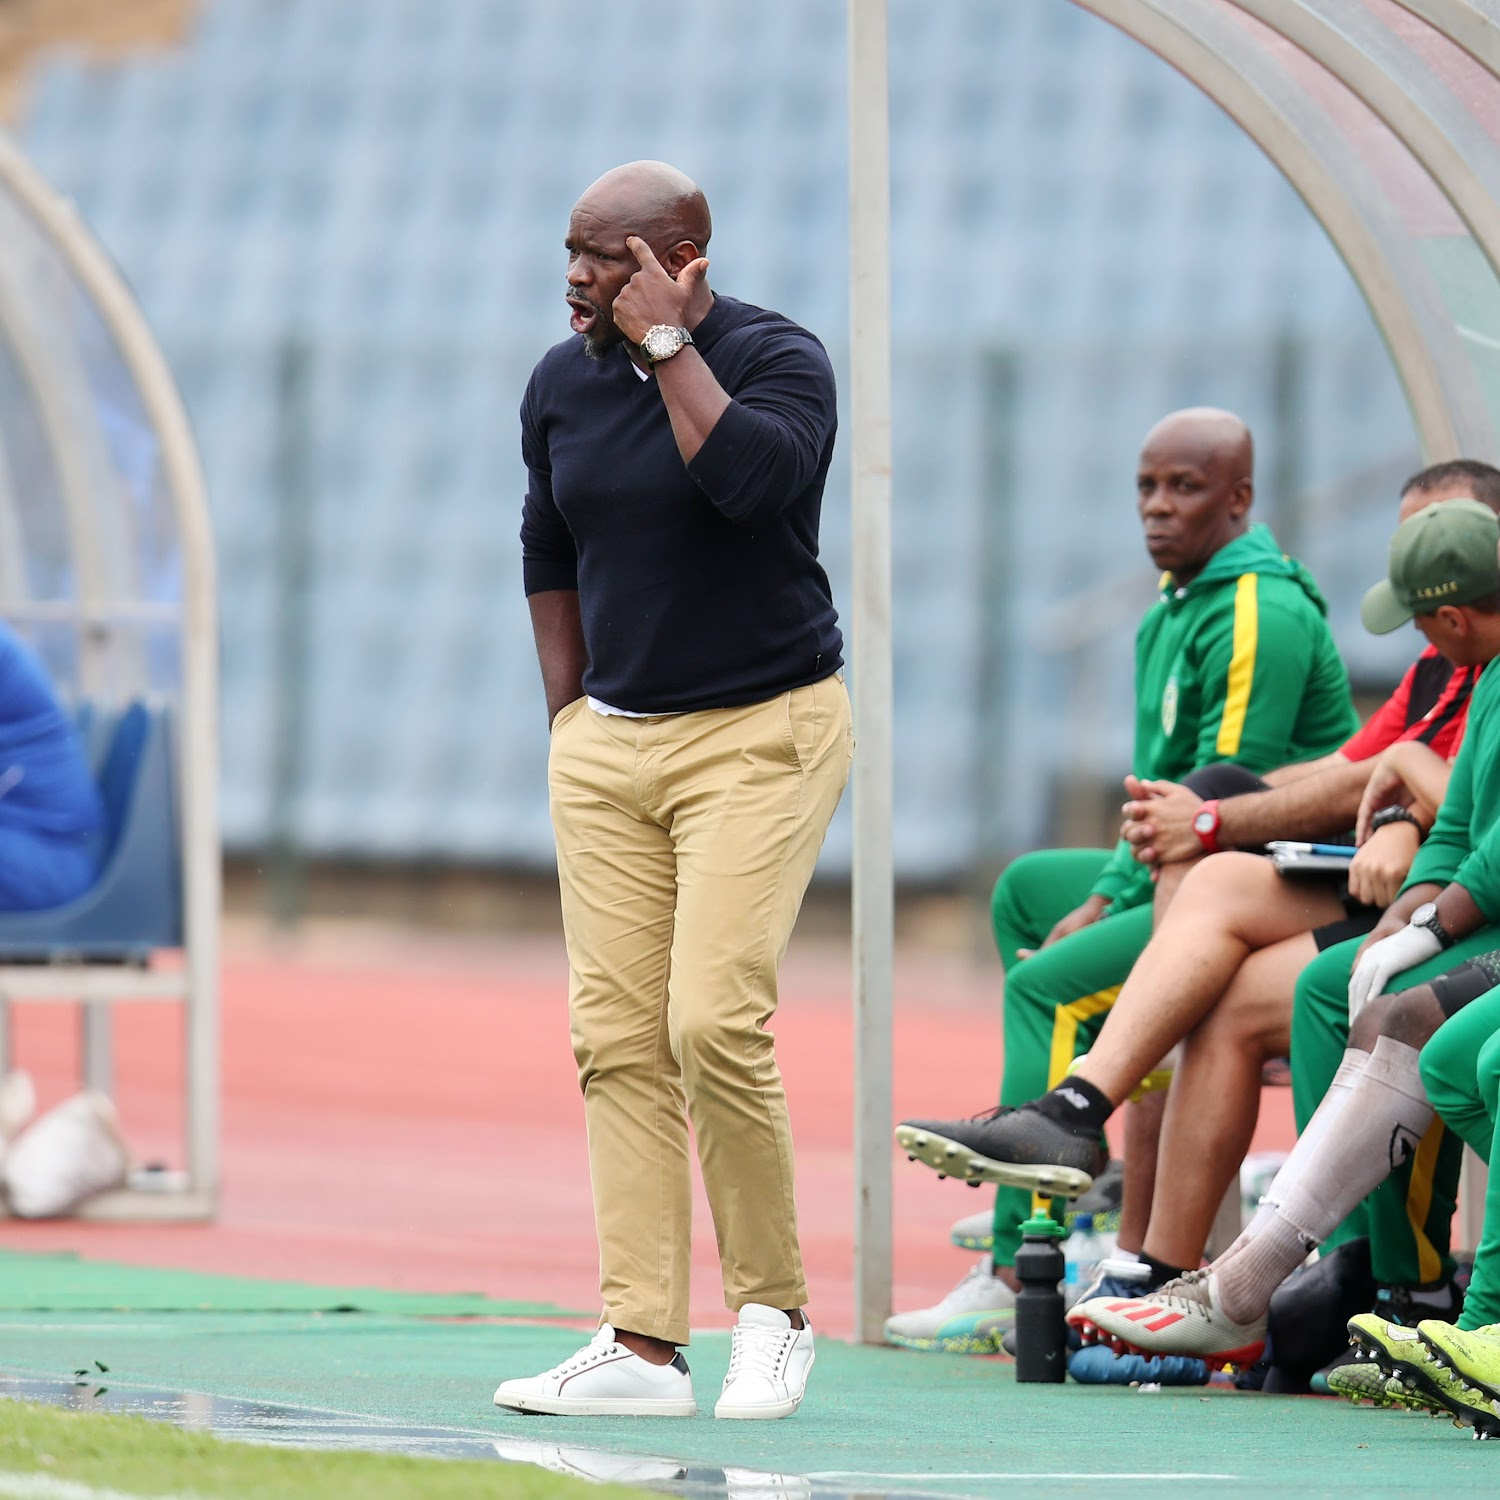 Steve Komphela on the title race: 'It's going to be hot in the kitchen'